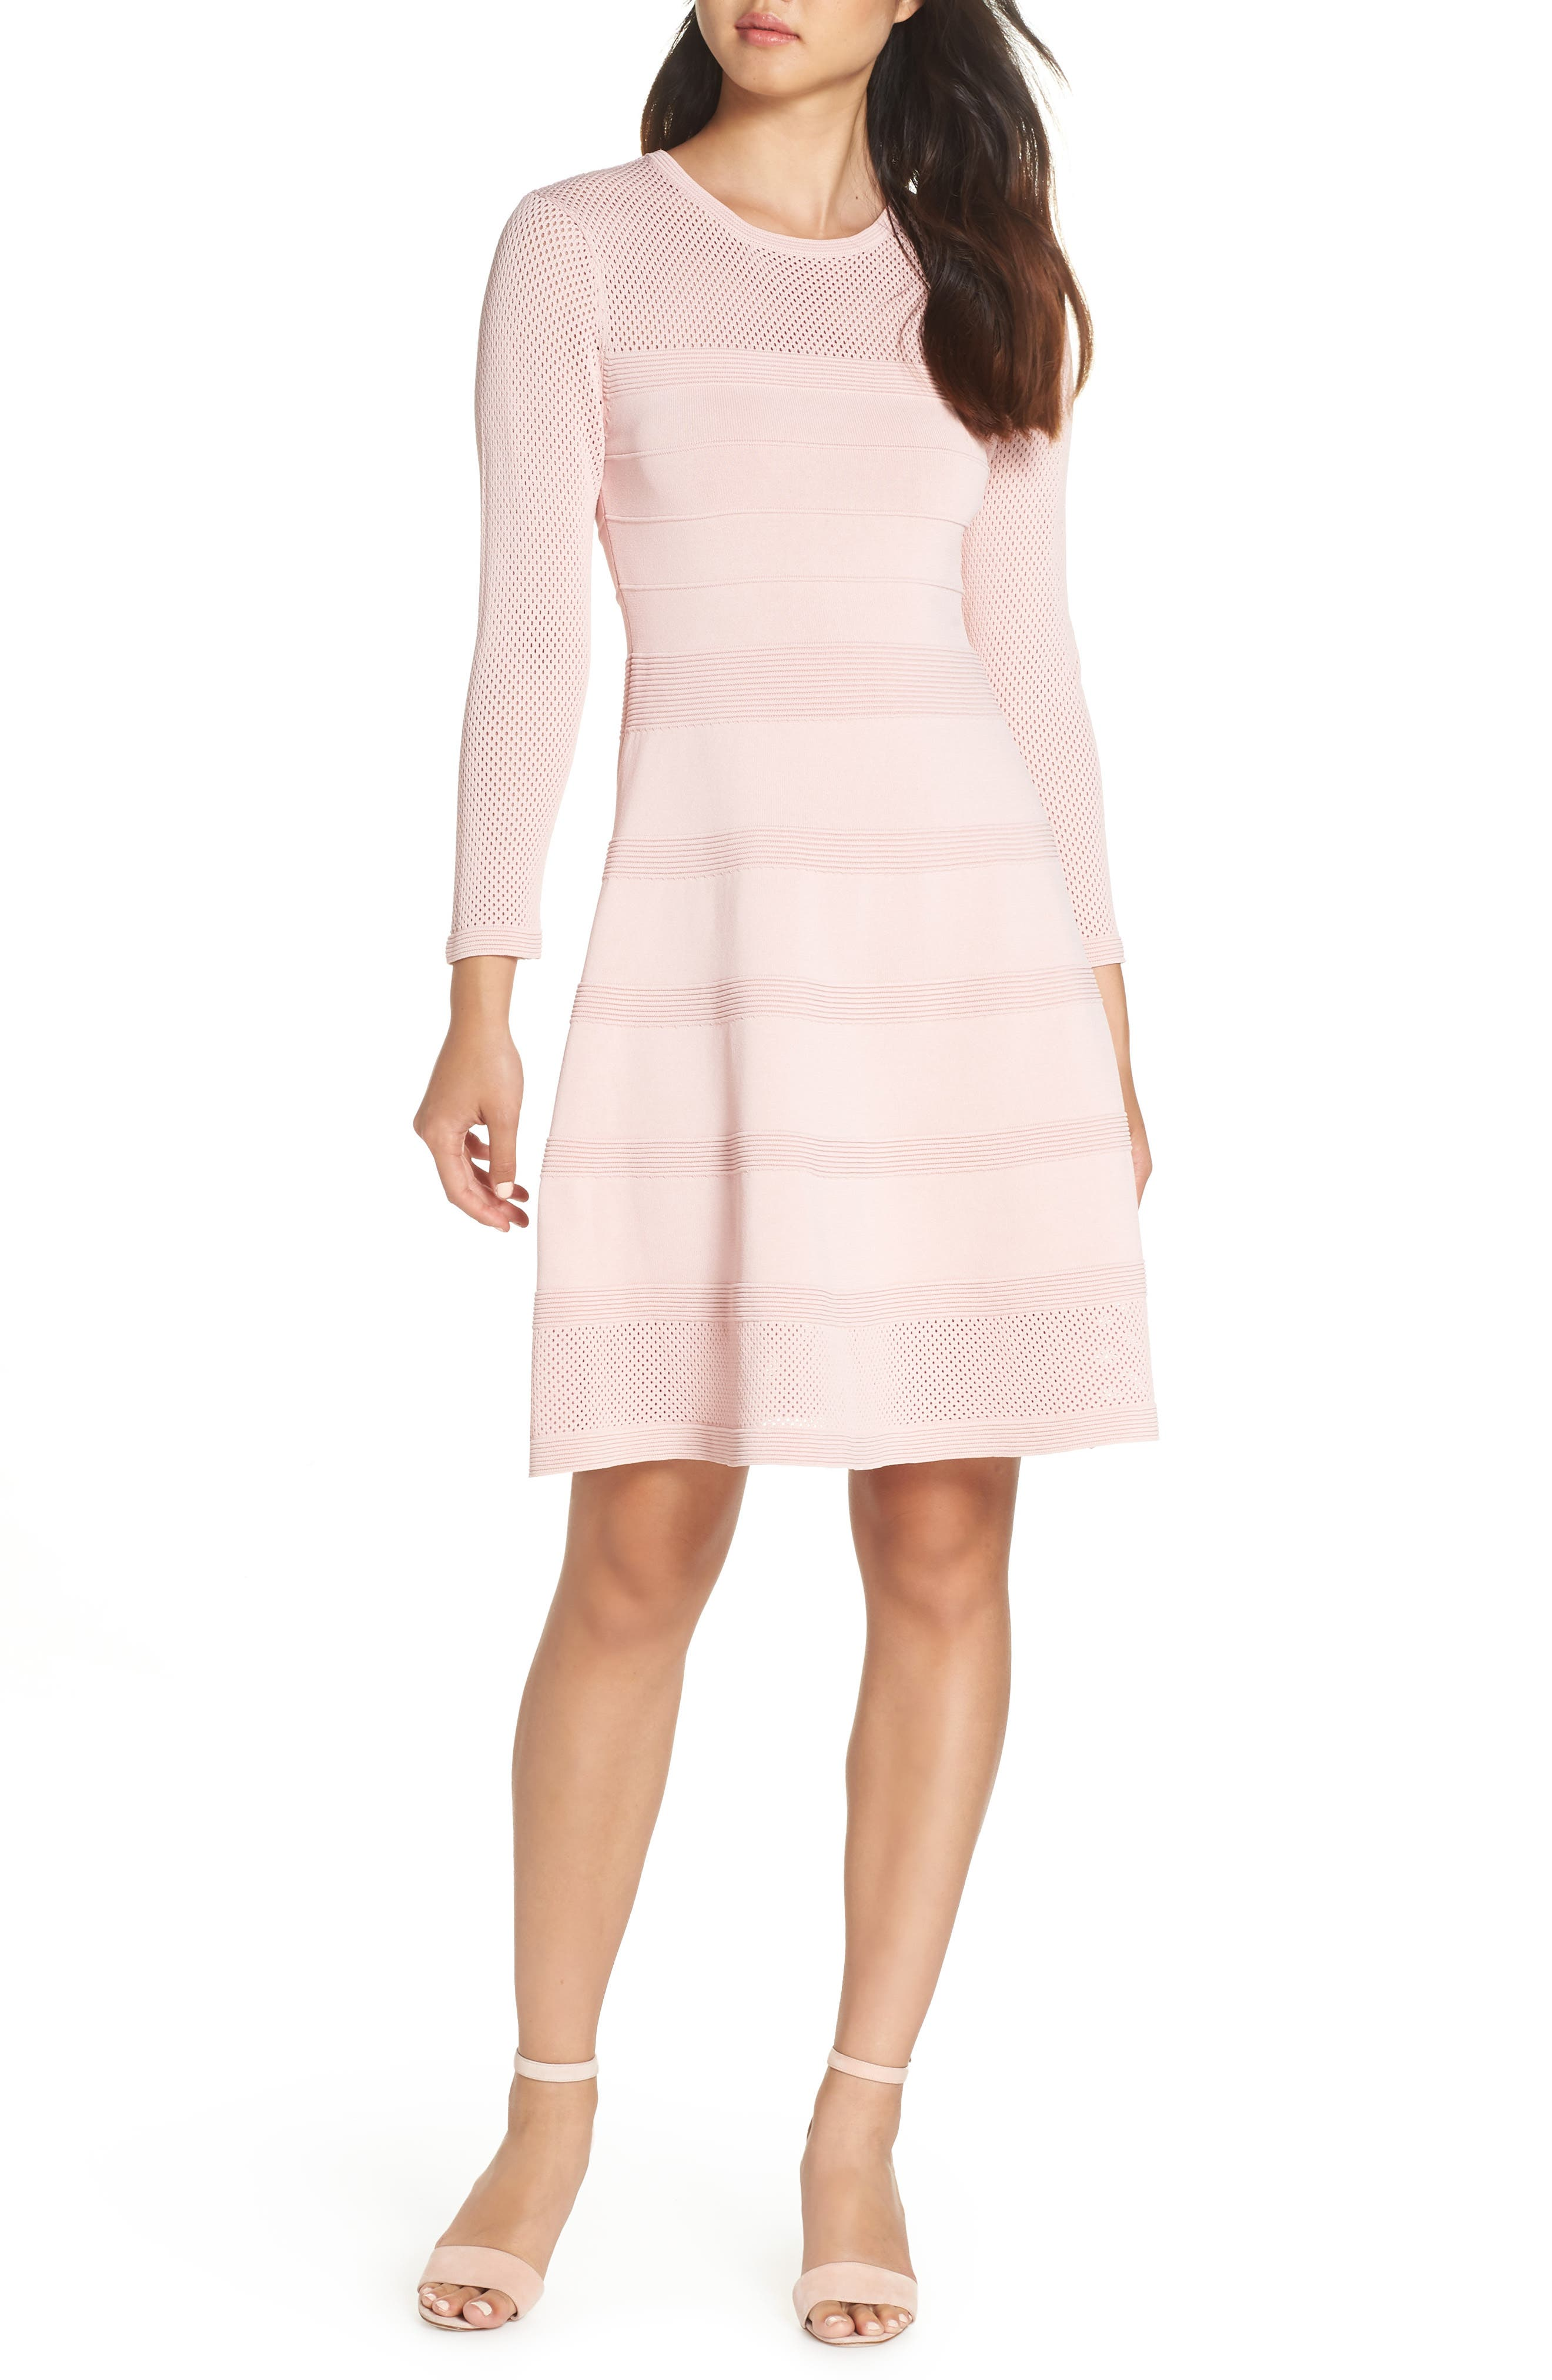 Vince Camuto Mix Stitch Pointelle Fit & Flare Dress, Pink